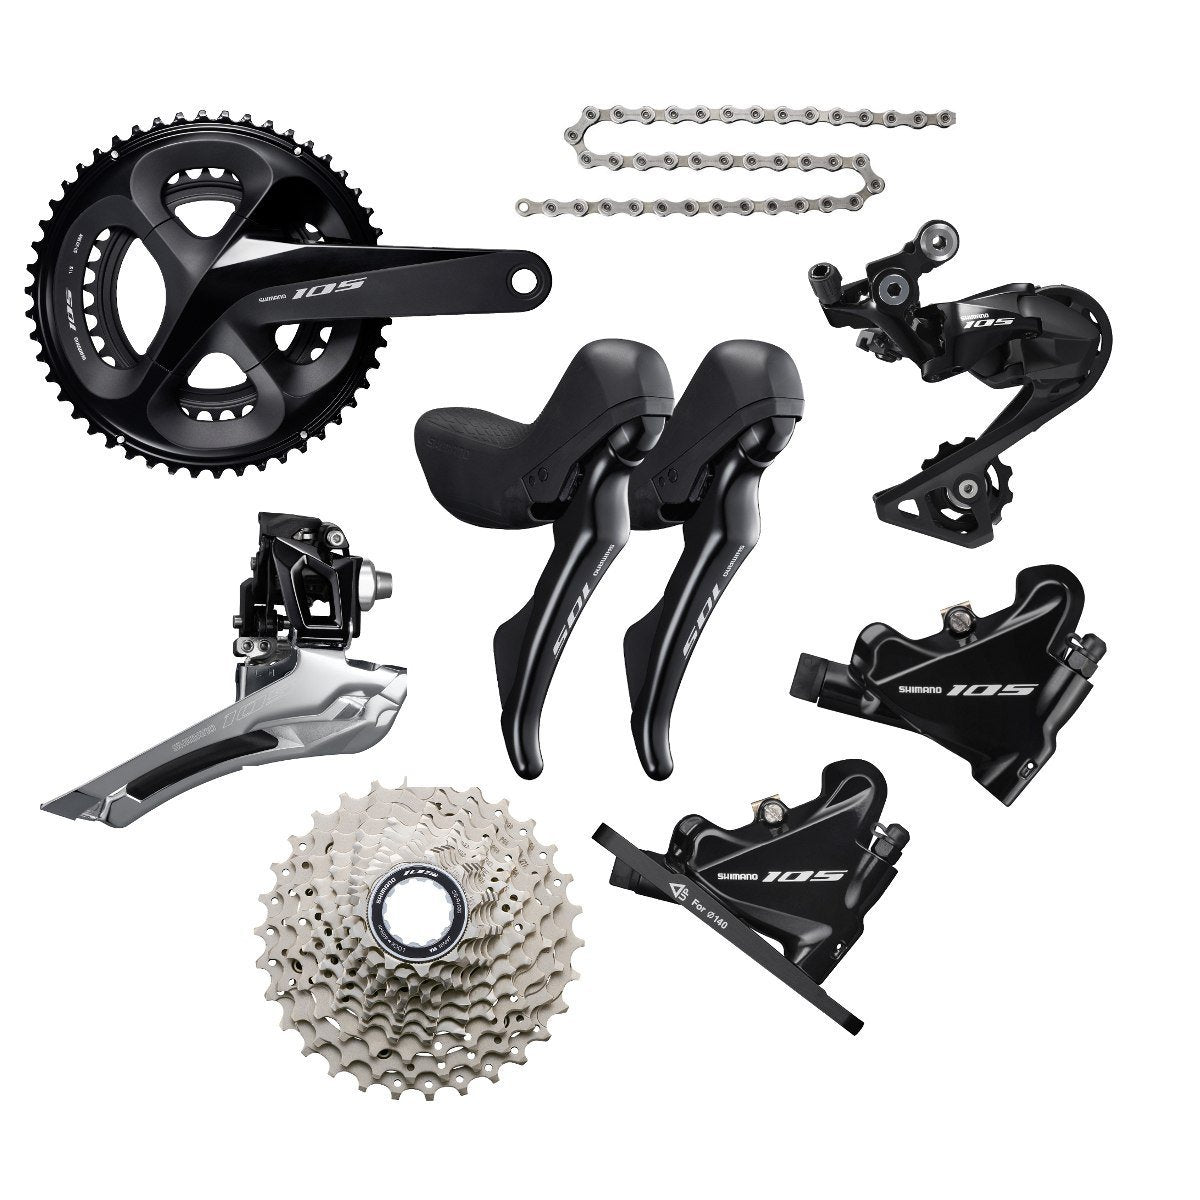 Shimano 105 R7020 Disc Groupset Black